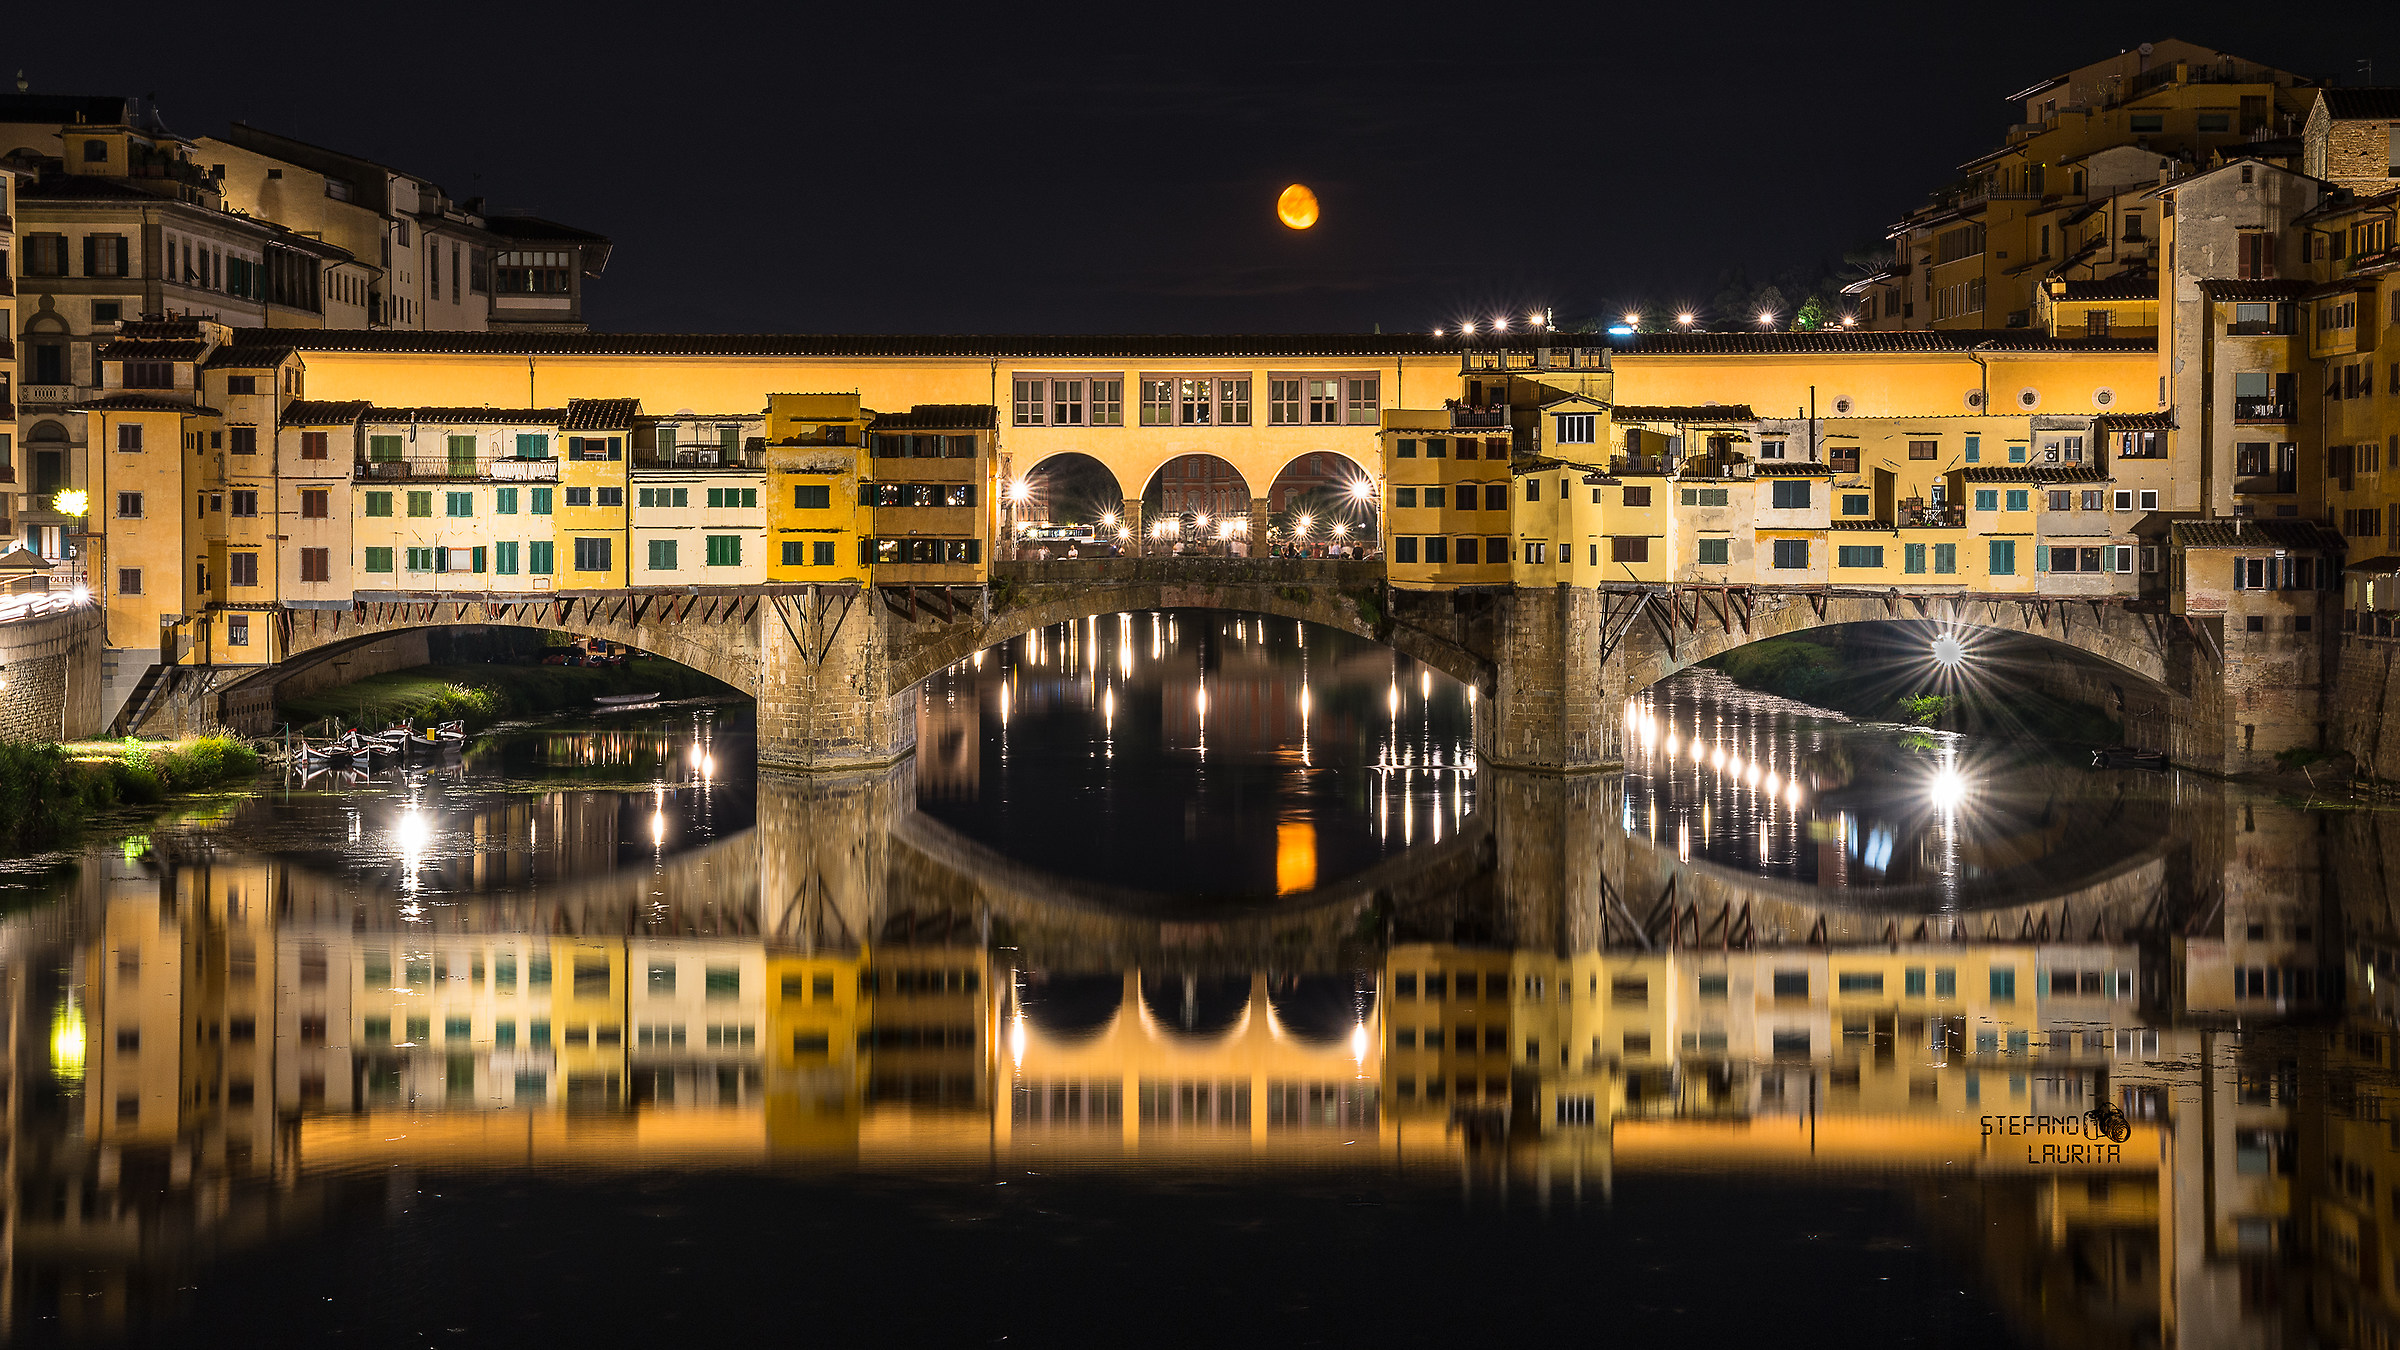 Flaming moonlight on Ponte Vecchio...